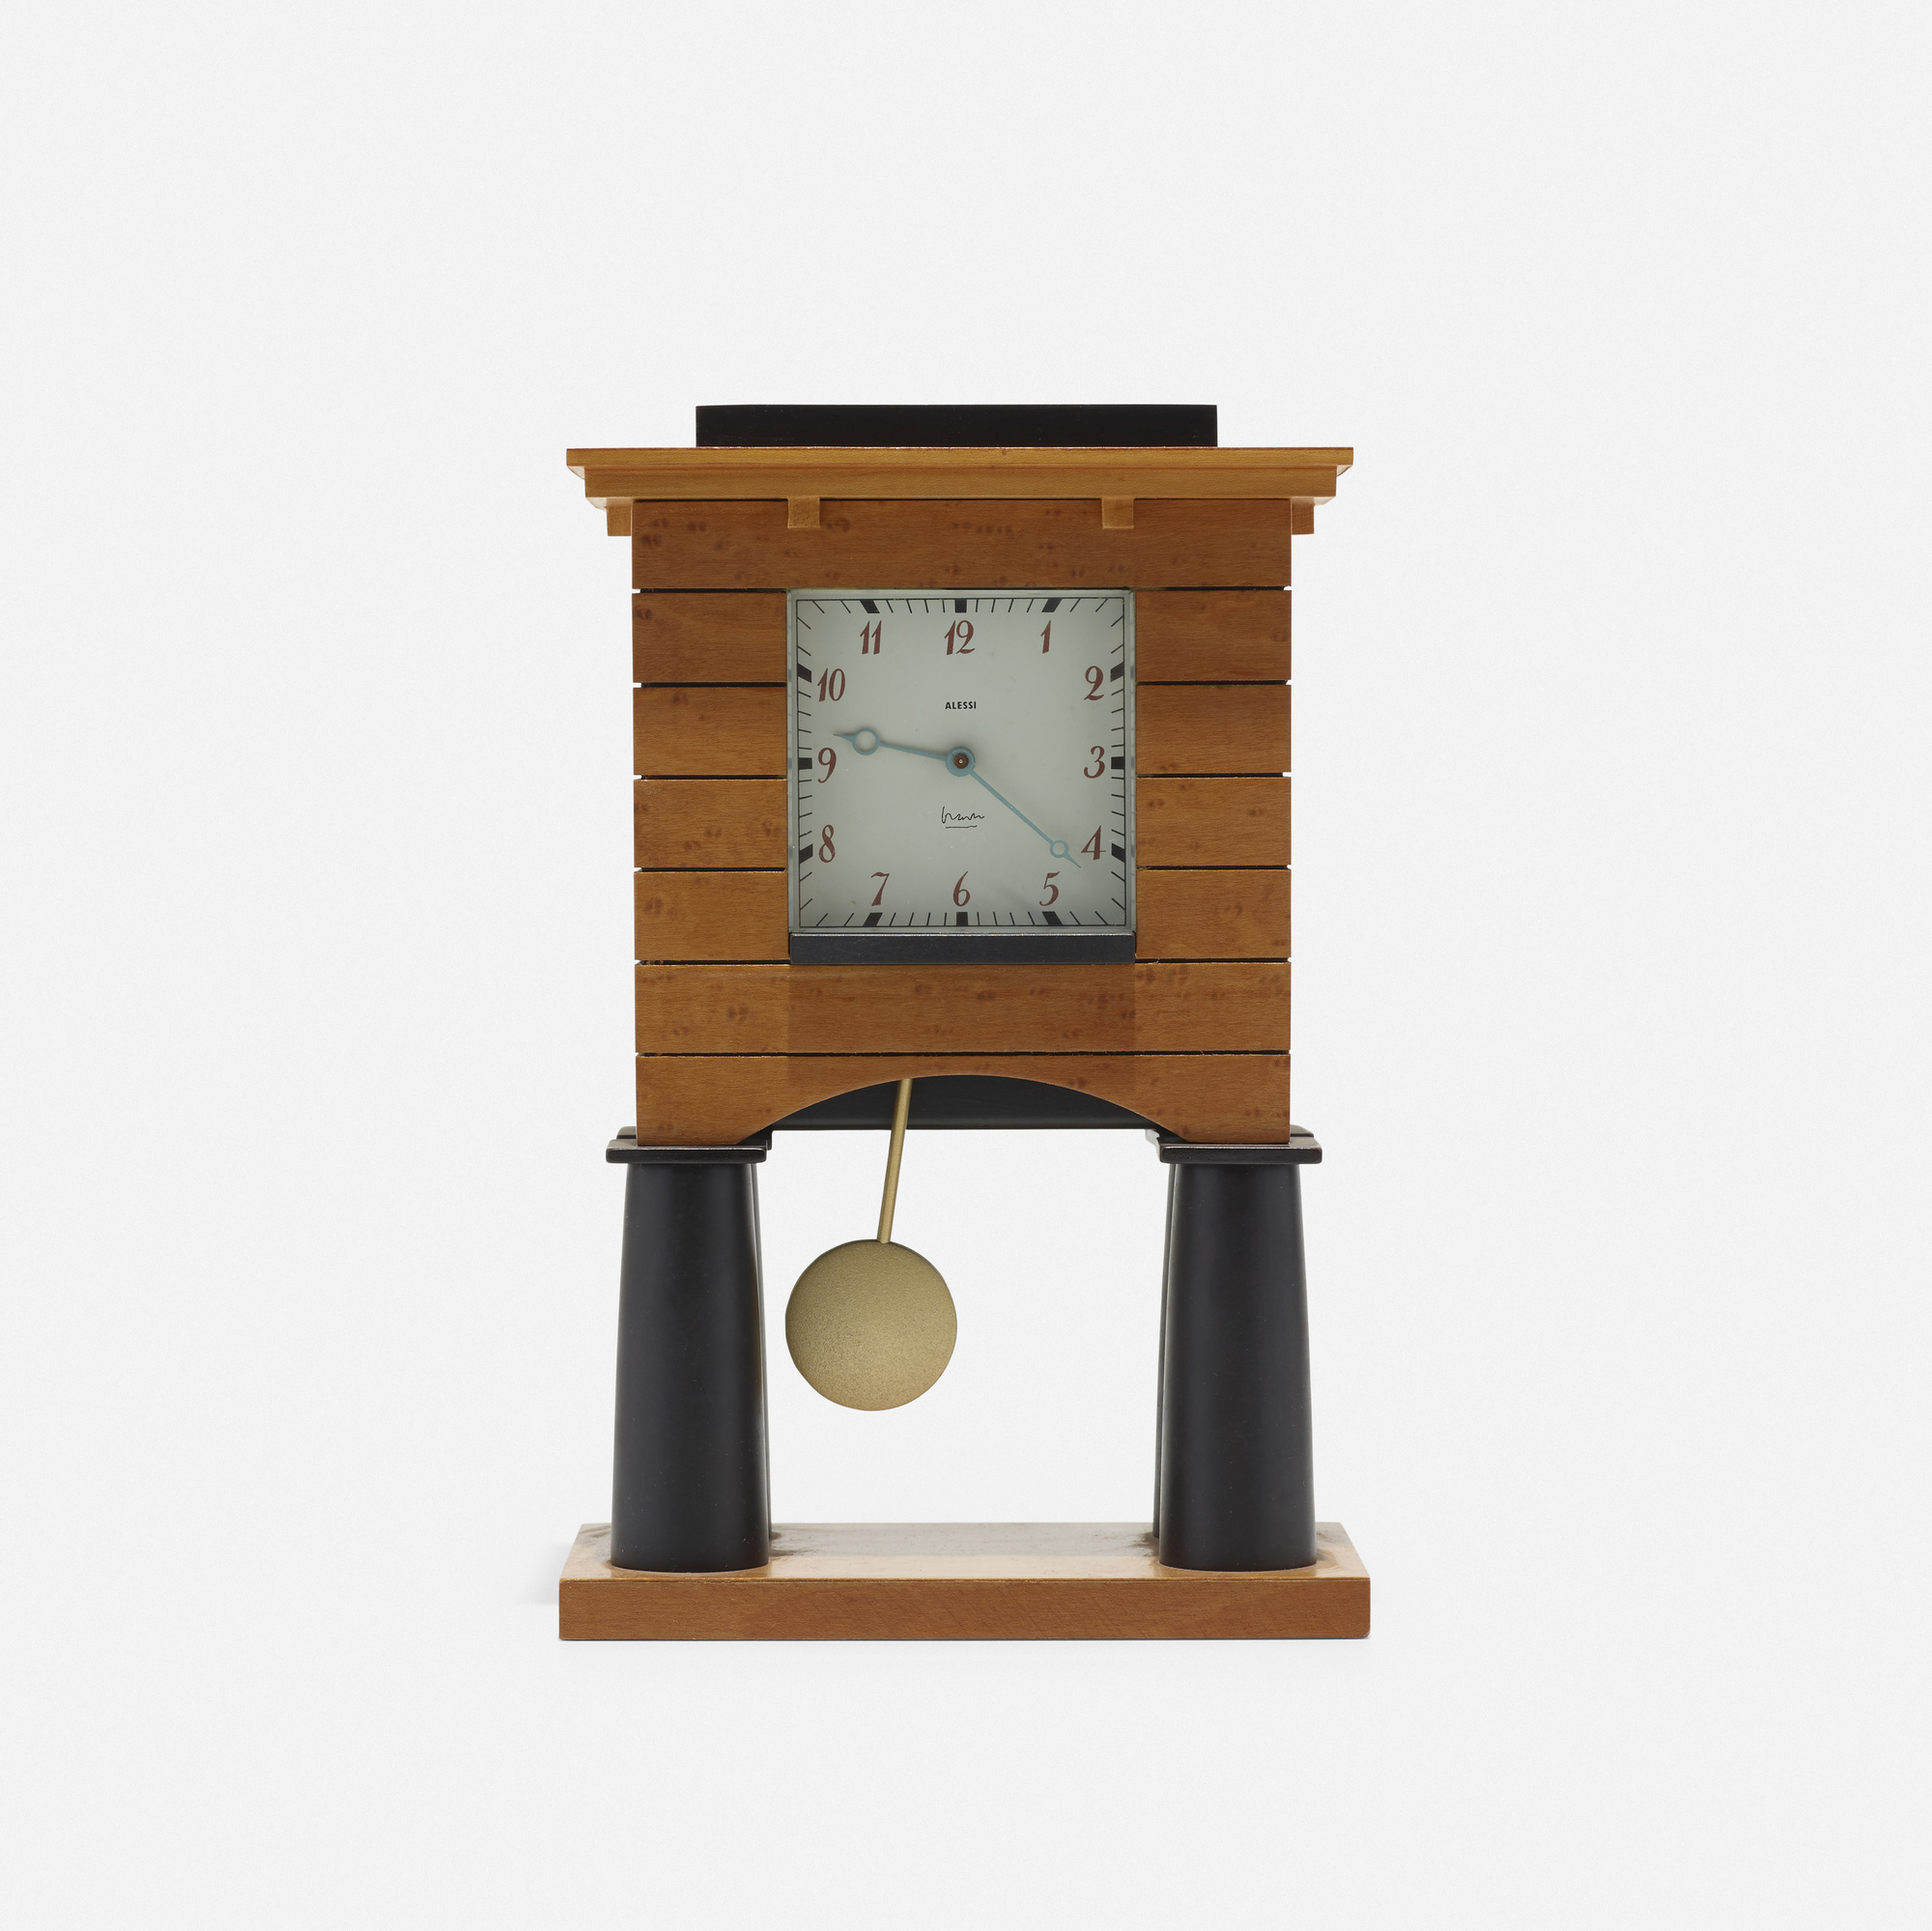 276: Michael Graves / Mantle Clock (1 of 3)